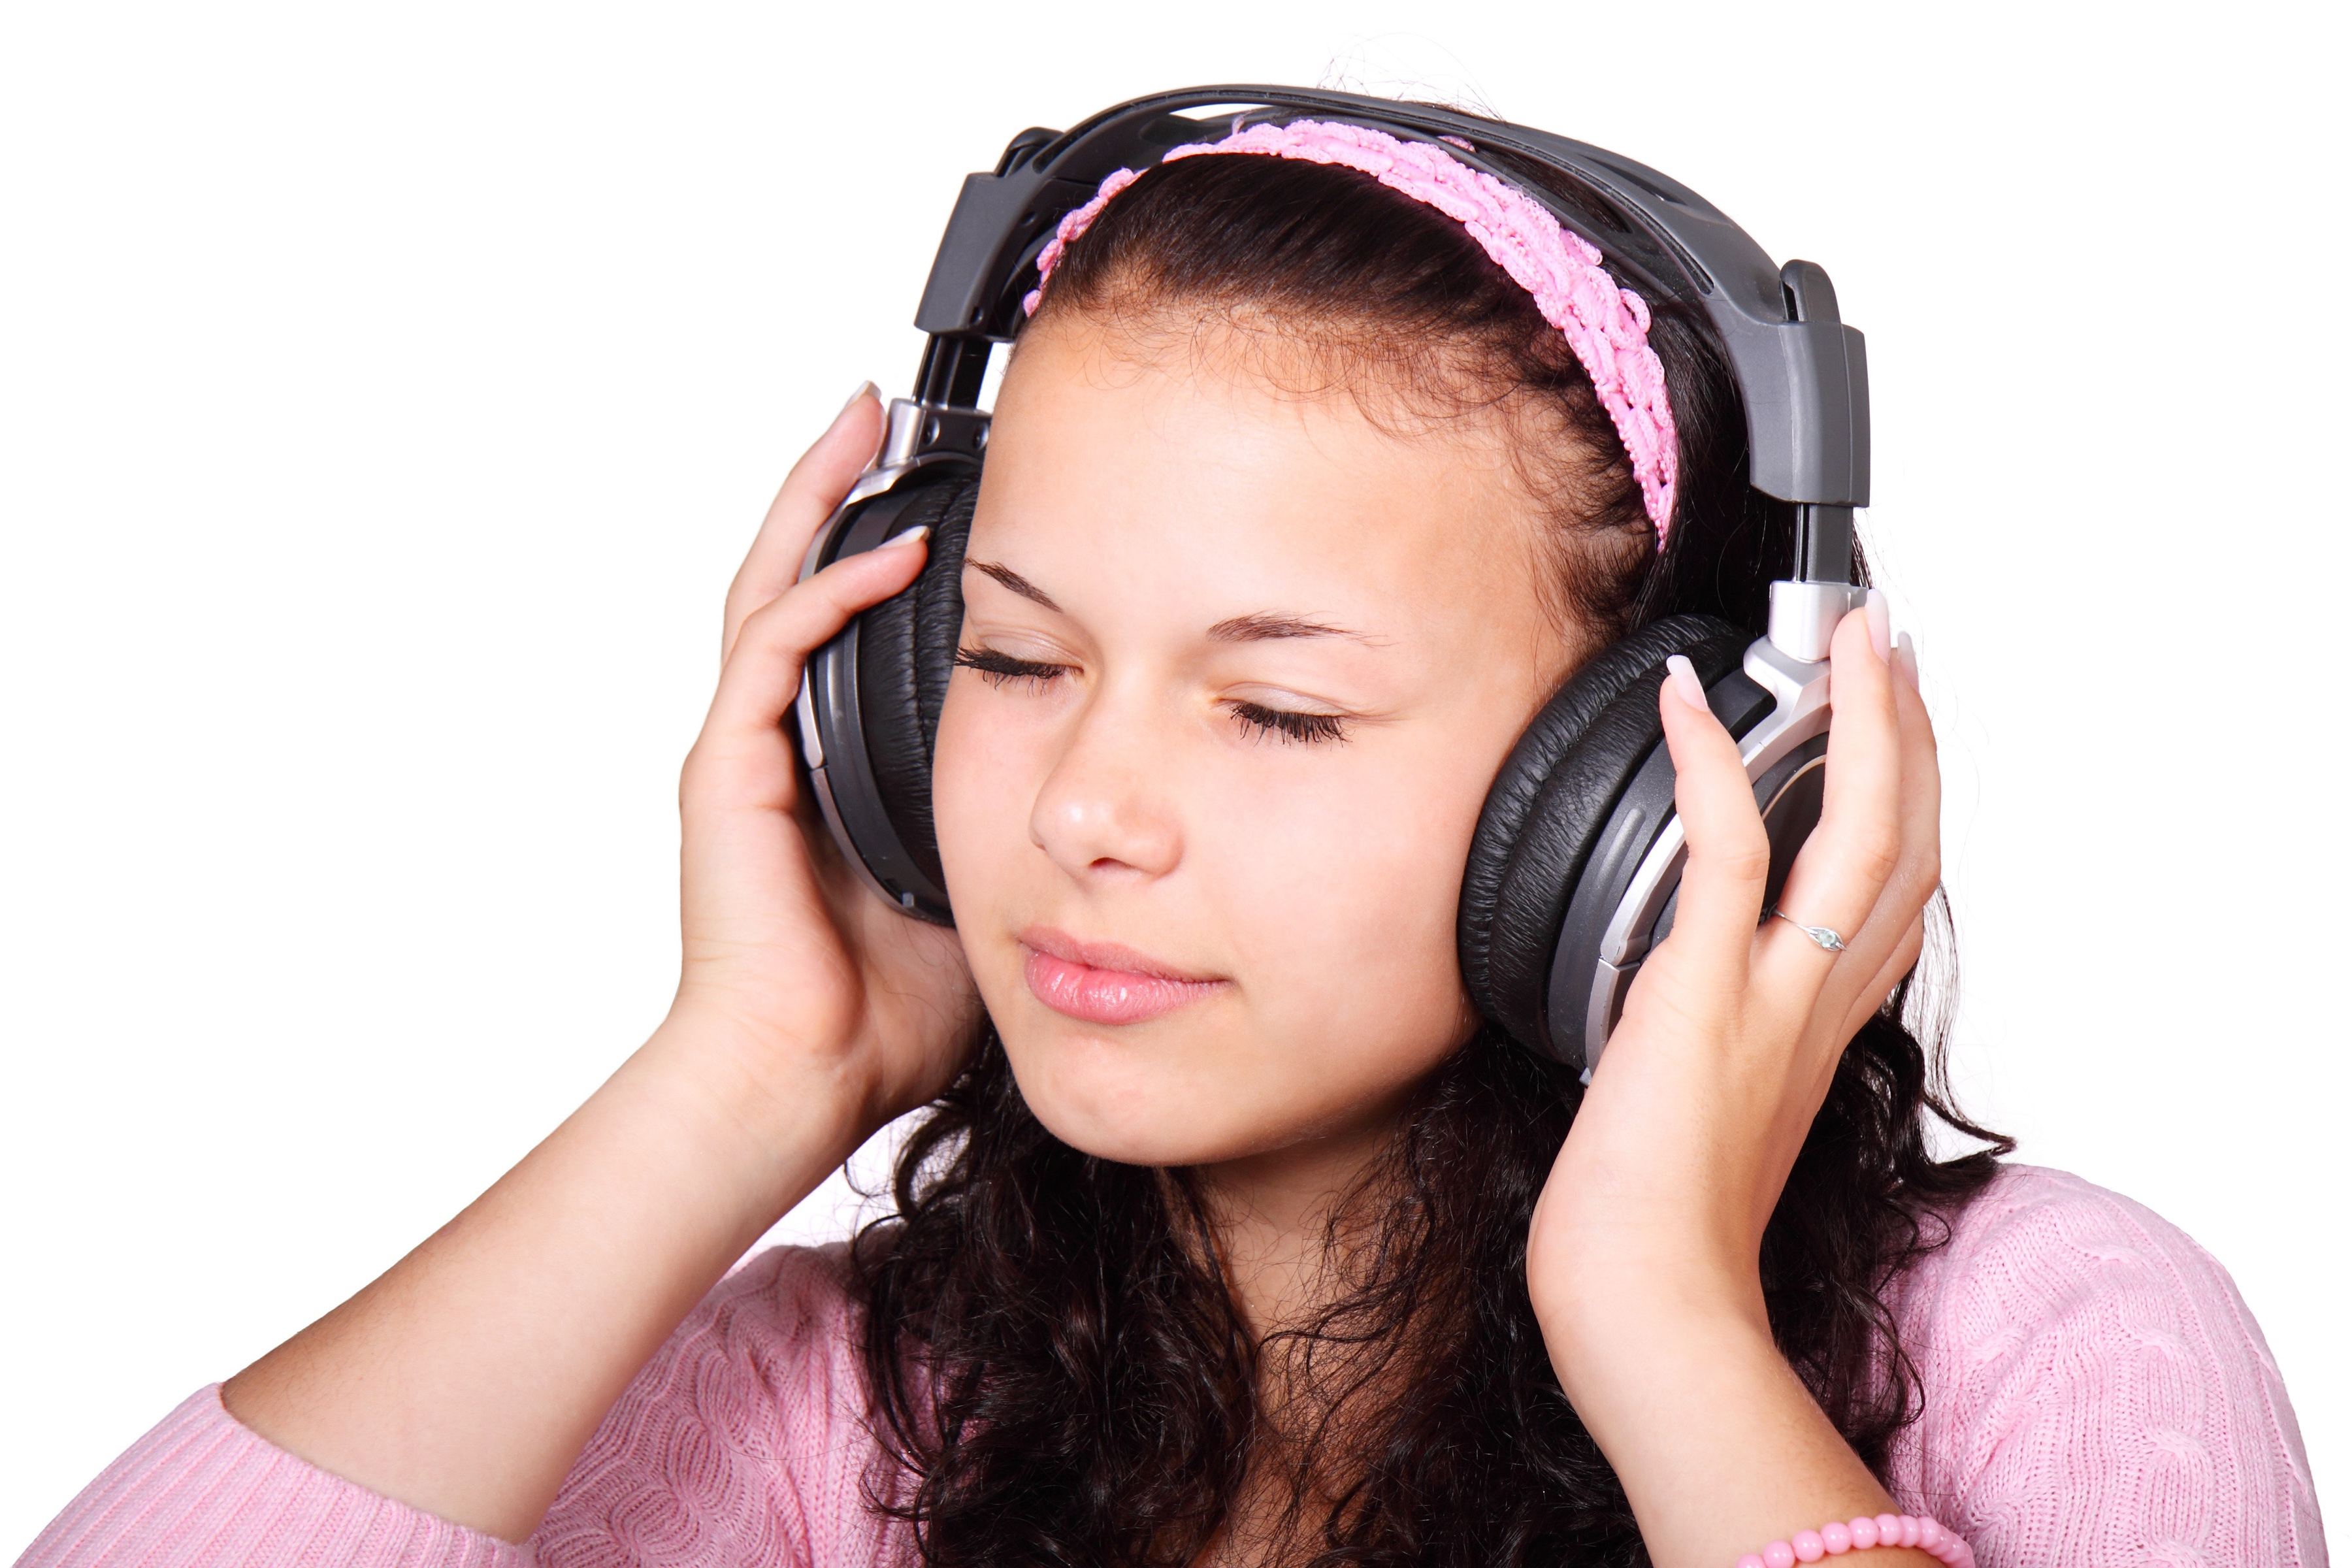 A girl listens to music via headphones. (Pixabay Photo)